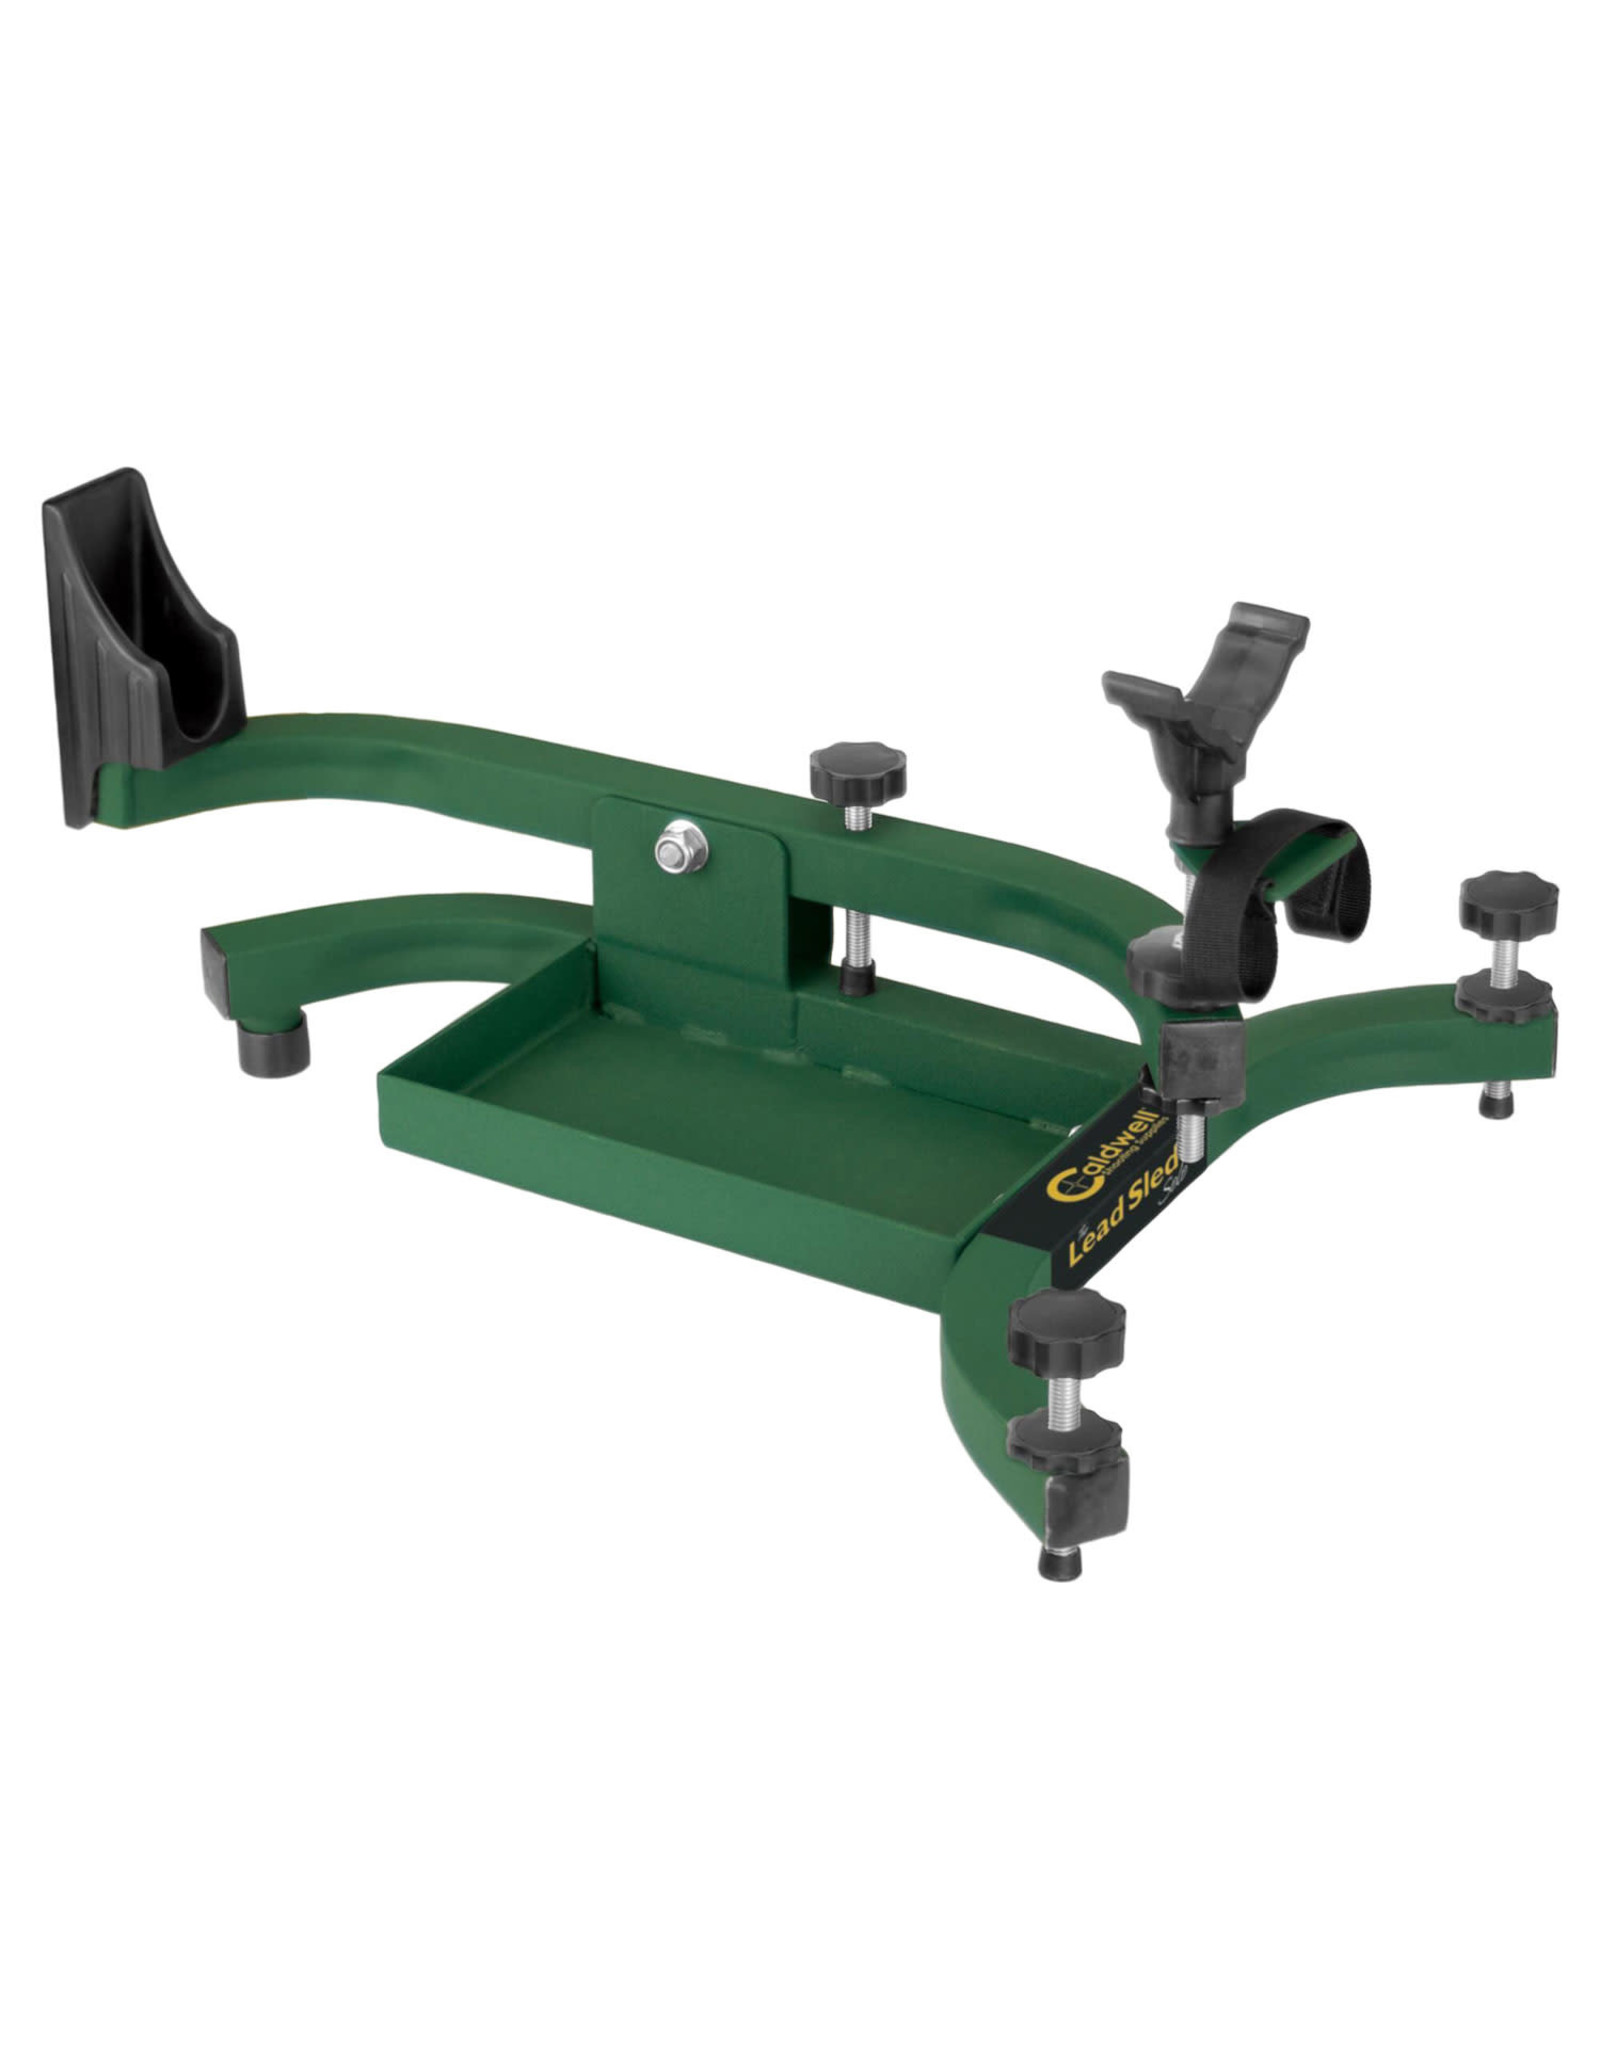 CALDWELL Caldwell Lead Sled Solo Rifle Rest